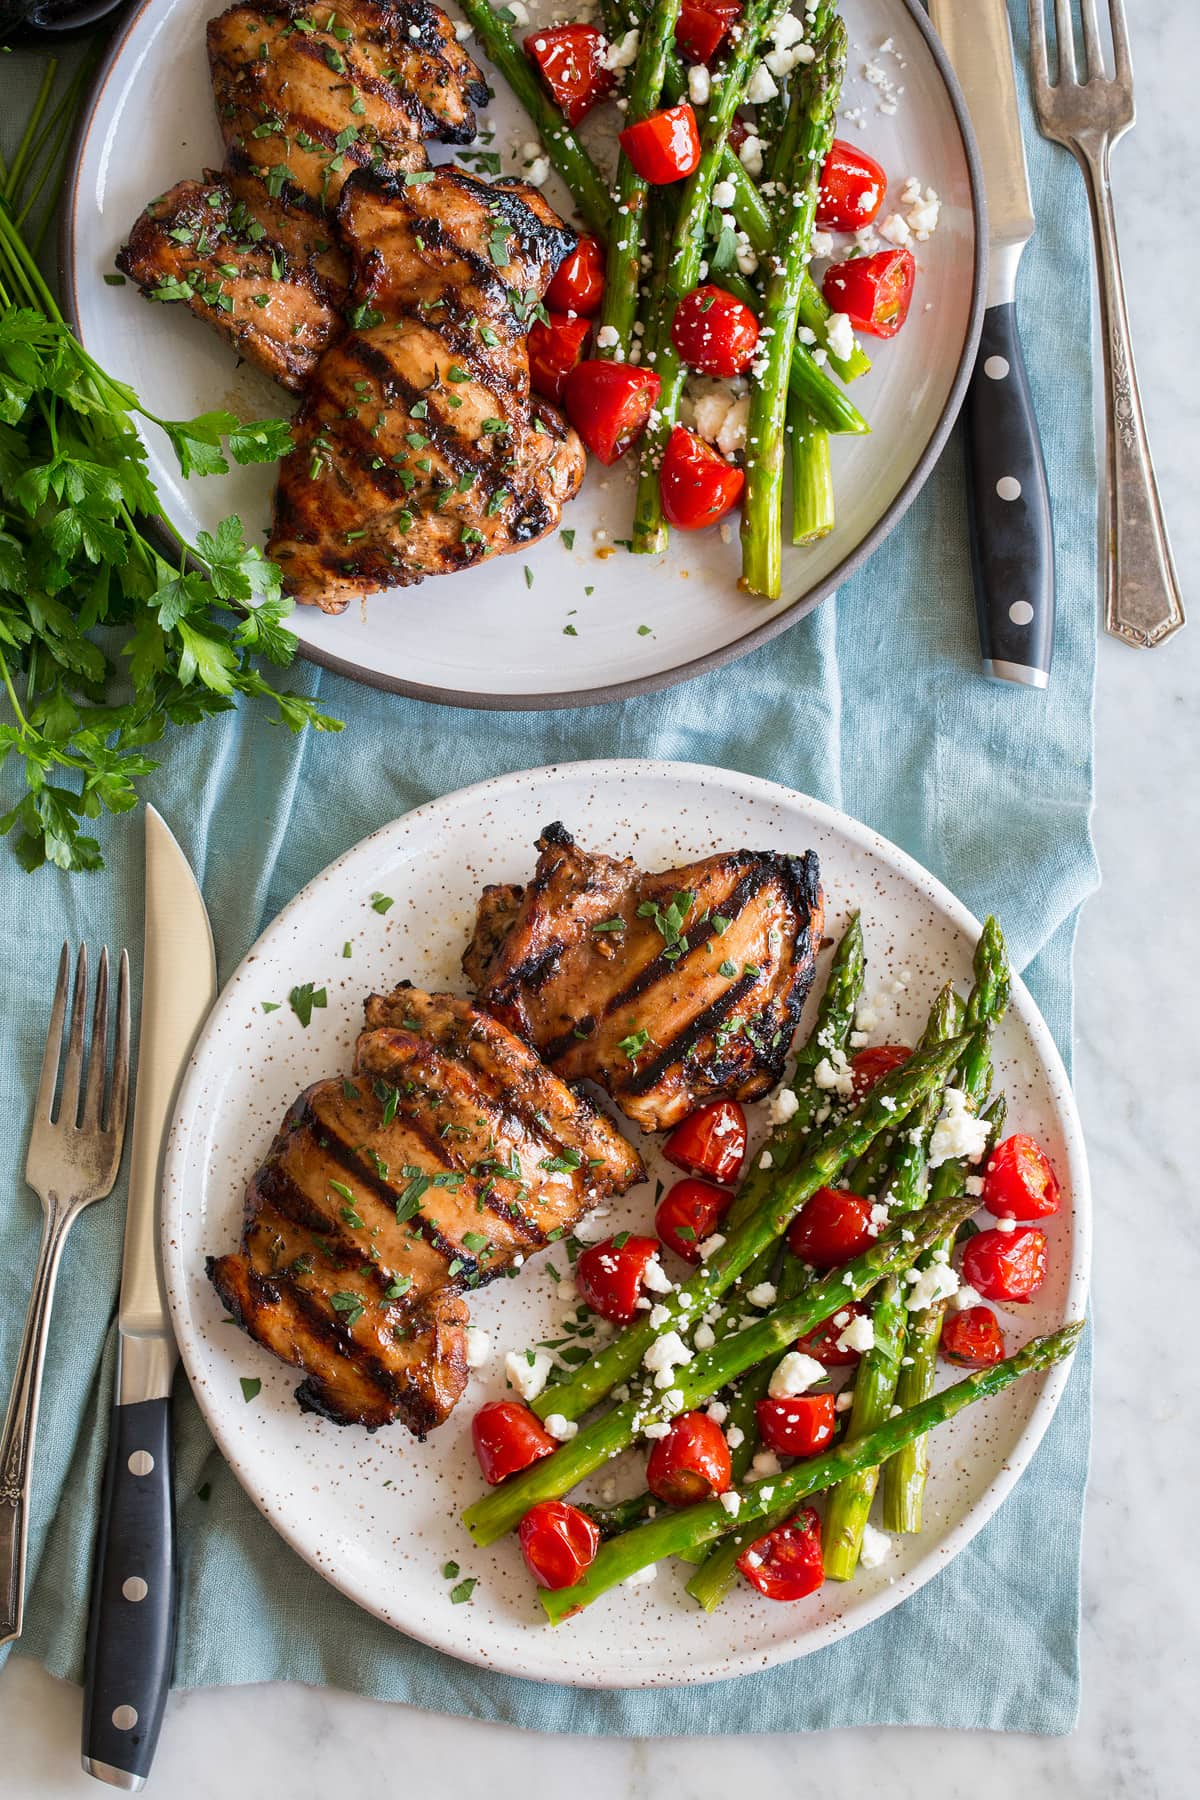 Photo: Two servings of balsamic chicken shown on serving plates with a serving suggestion of roasted asparagus and tomatoes.